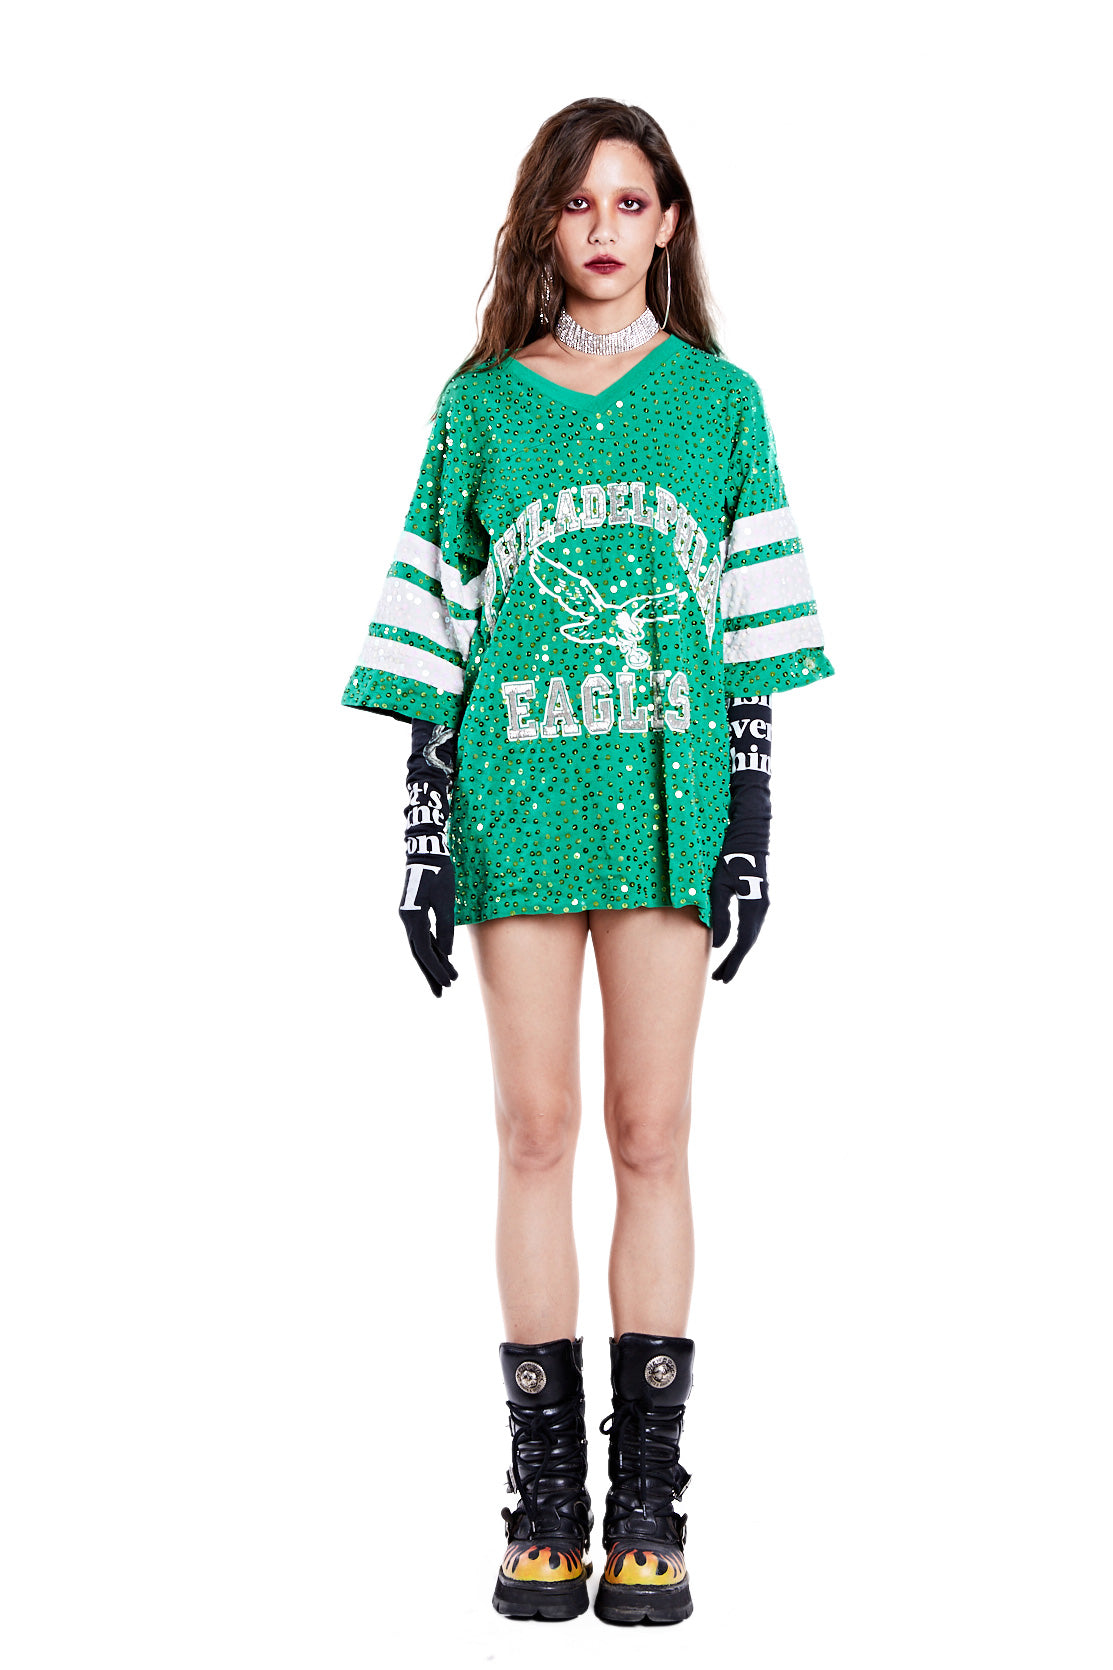 American Football Jersey Top - Philadelphia Eagles (2) - I LOVE DIY by Panida